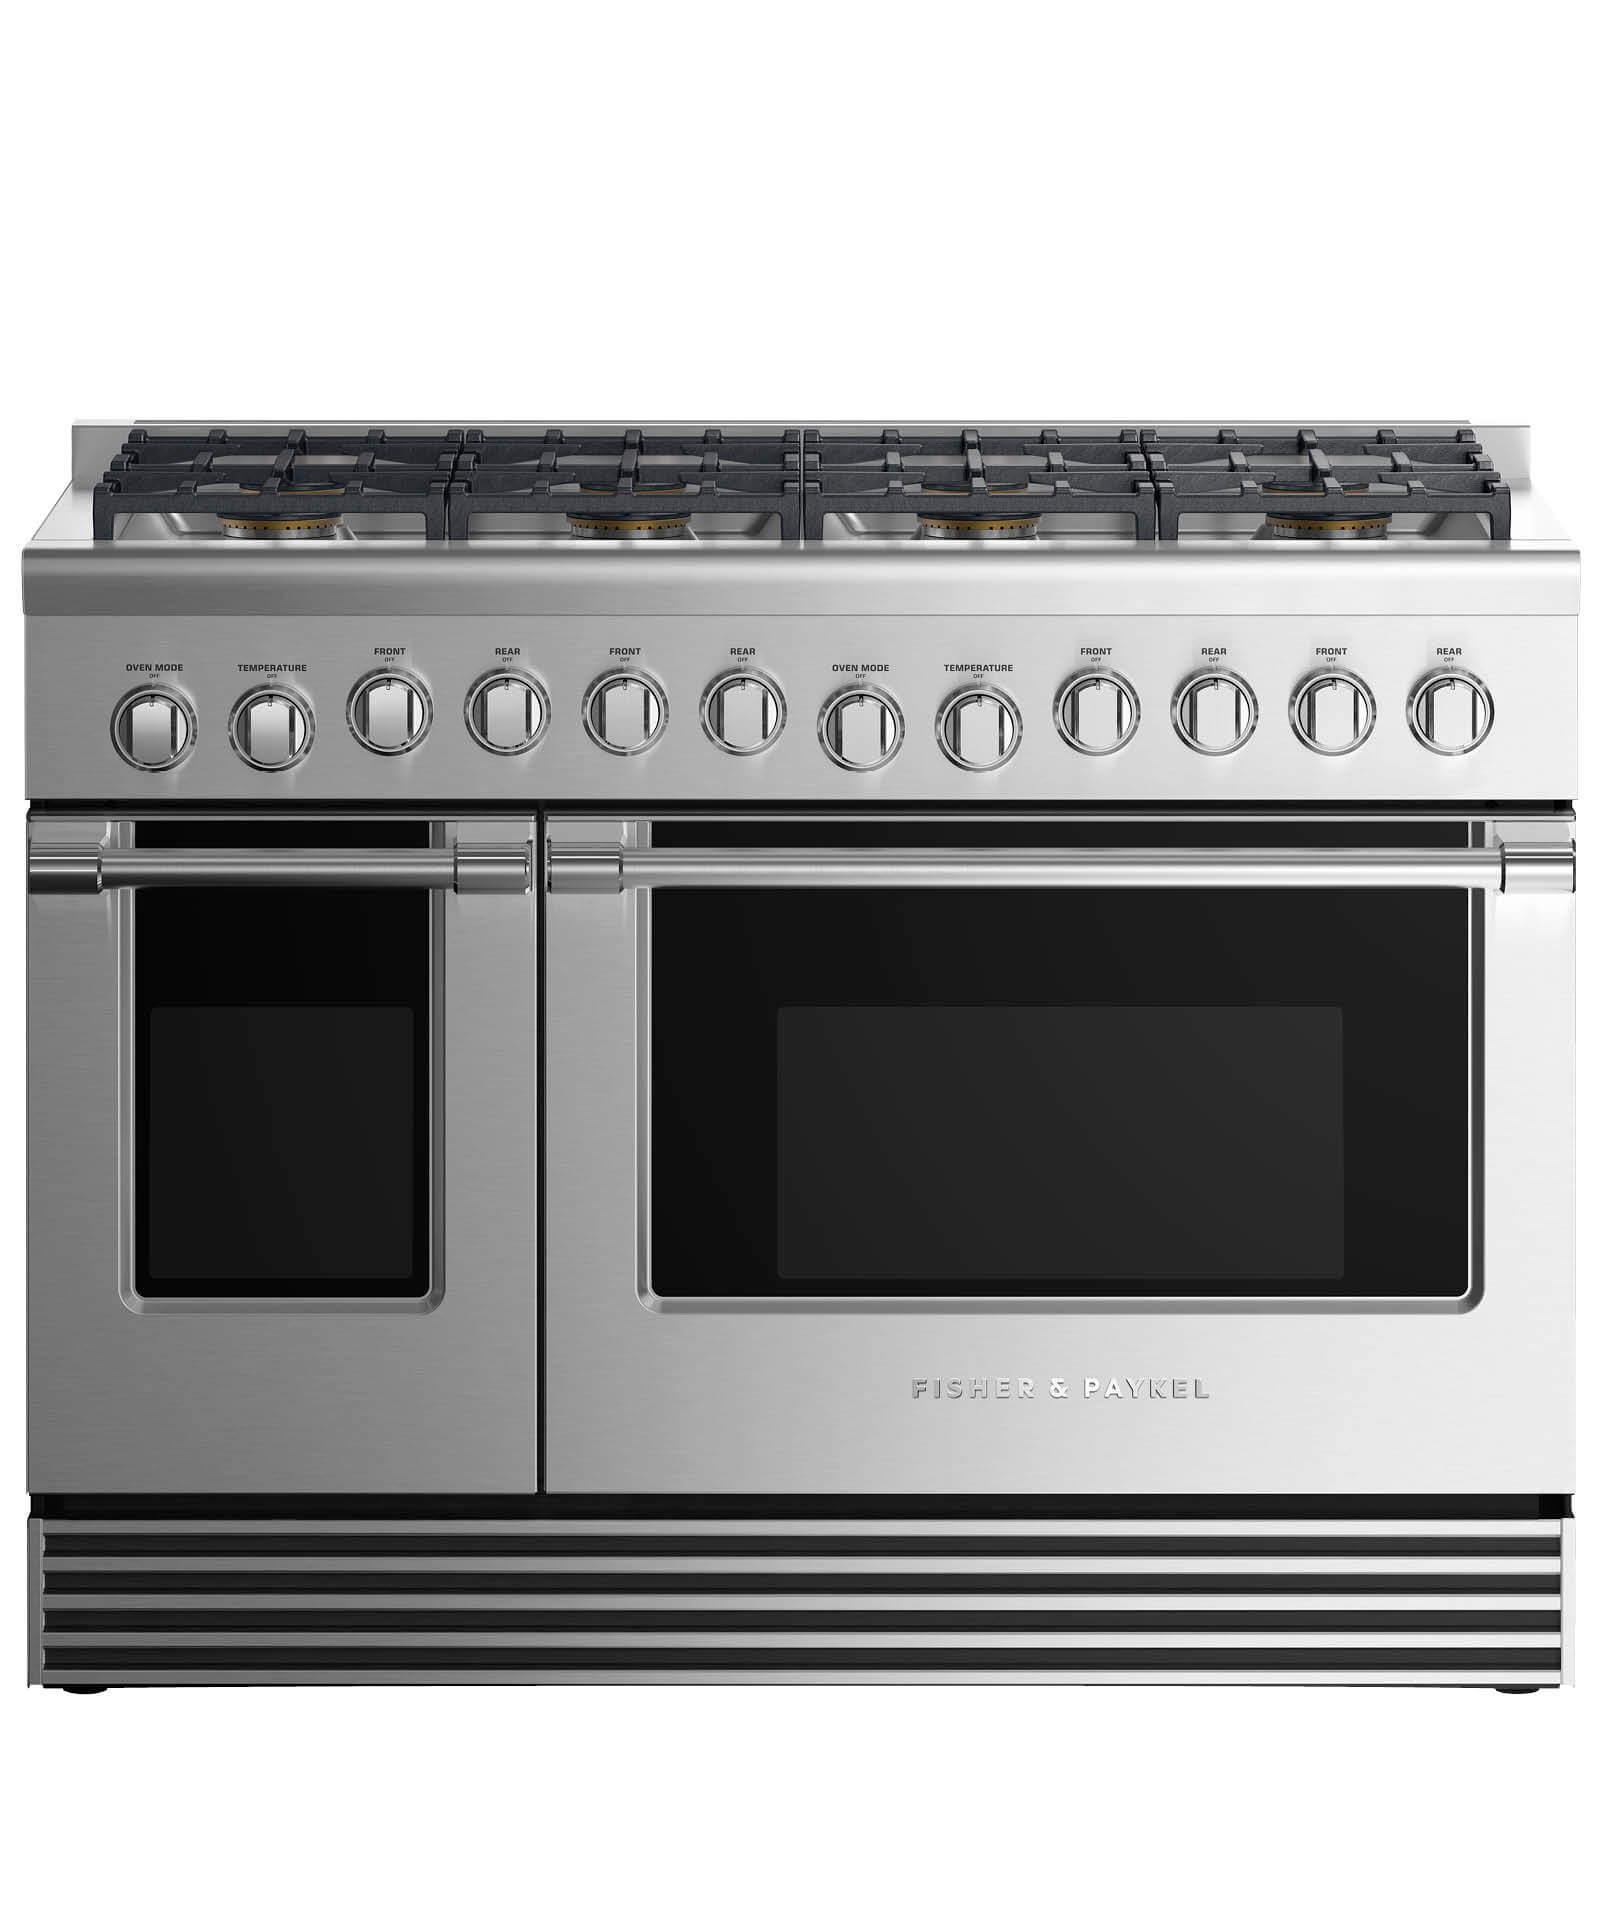 "Fisher and Paykel Dual Fuel Range 48"", 8 Burners"